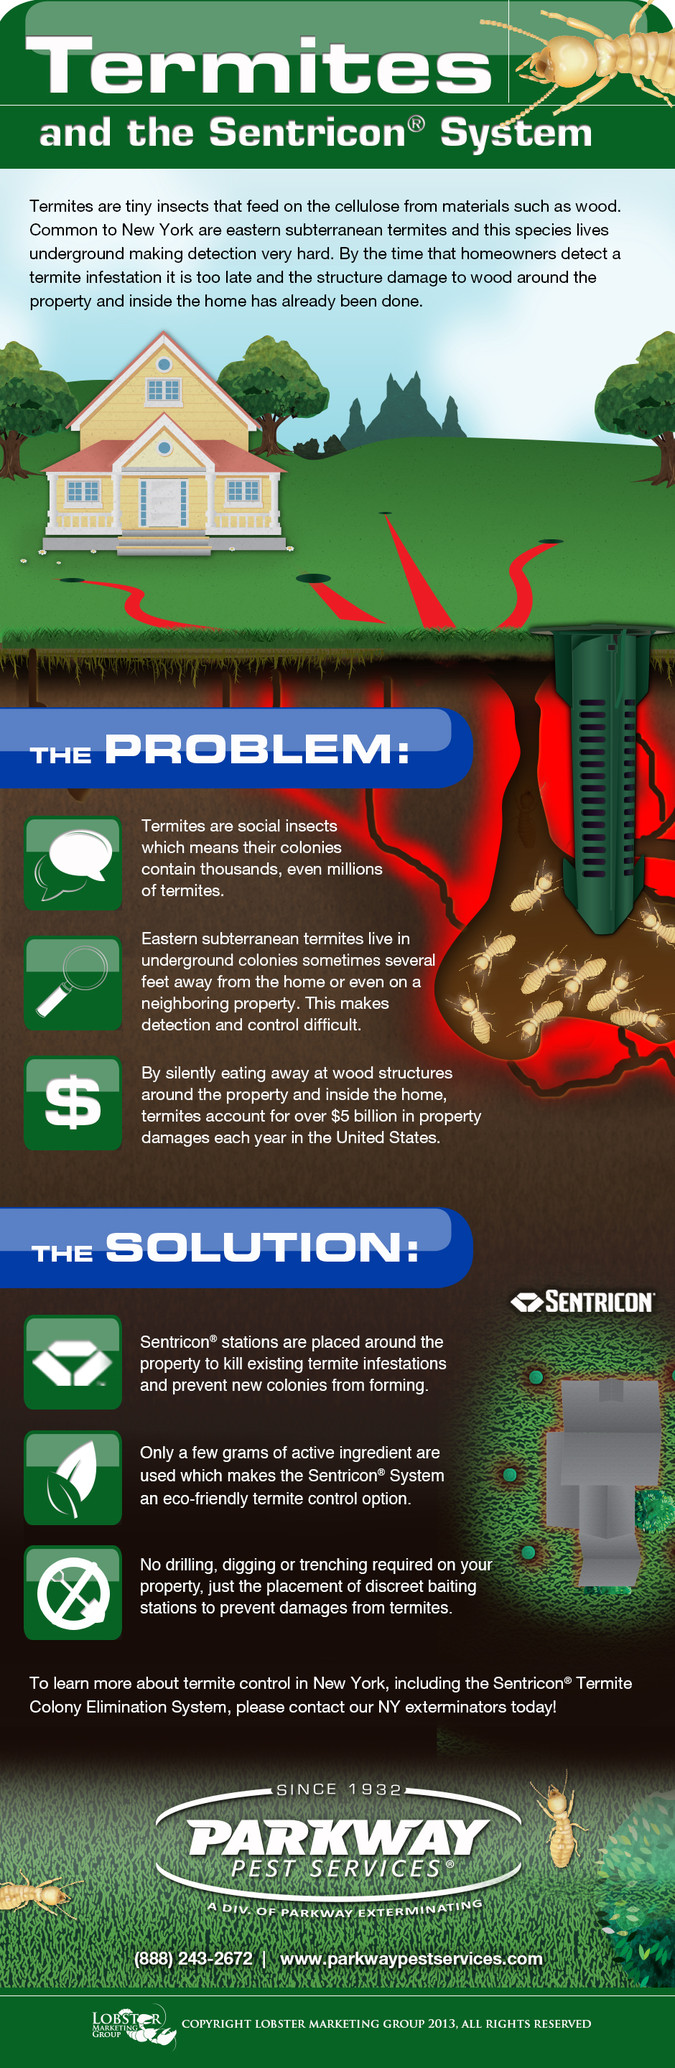 Termites in New York are no match for The Sentricon® System!